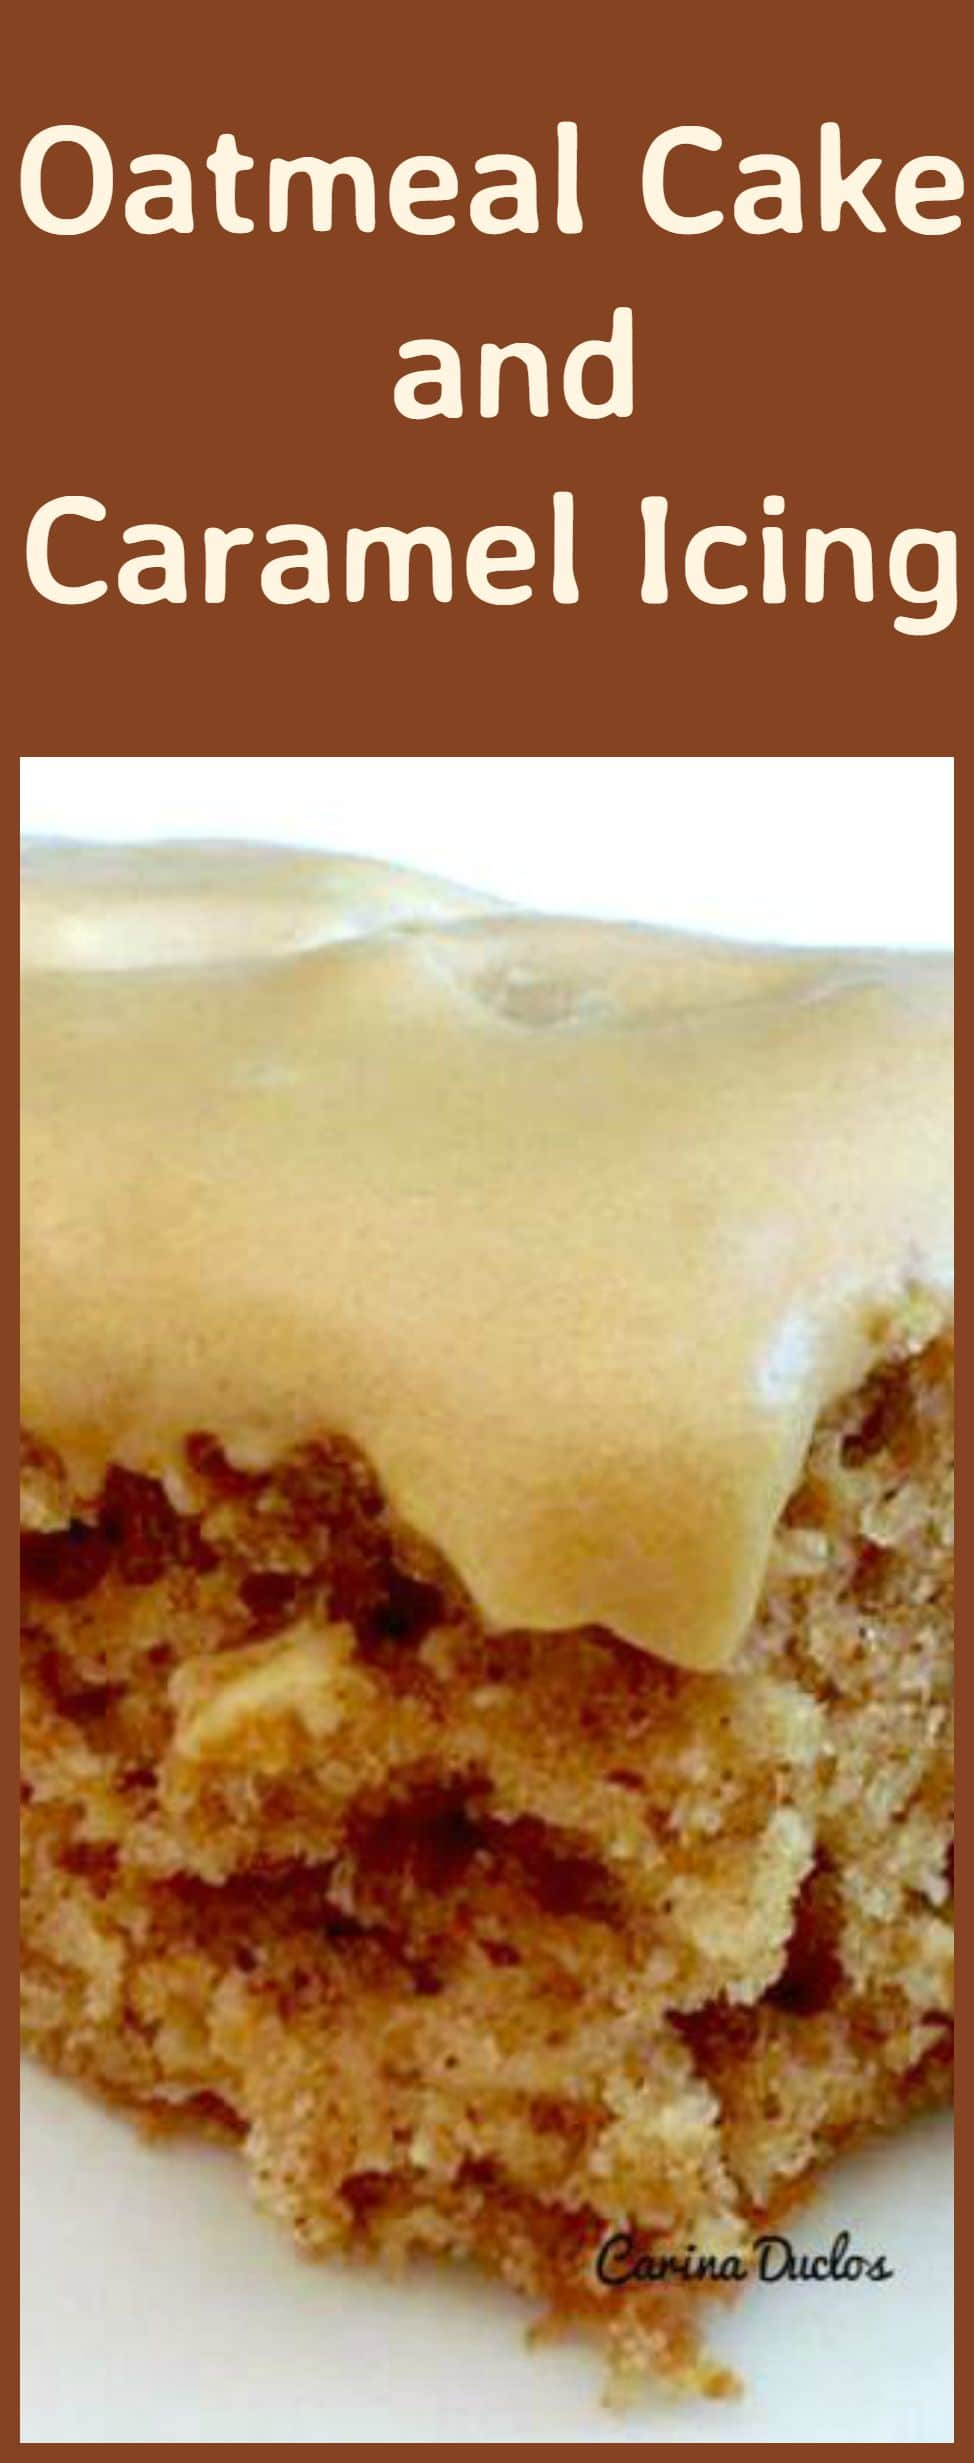 Oatmeal Cake With Caramel Icing A wonderful fluffy, moist cake with a great taste!